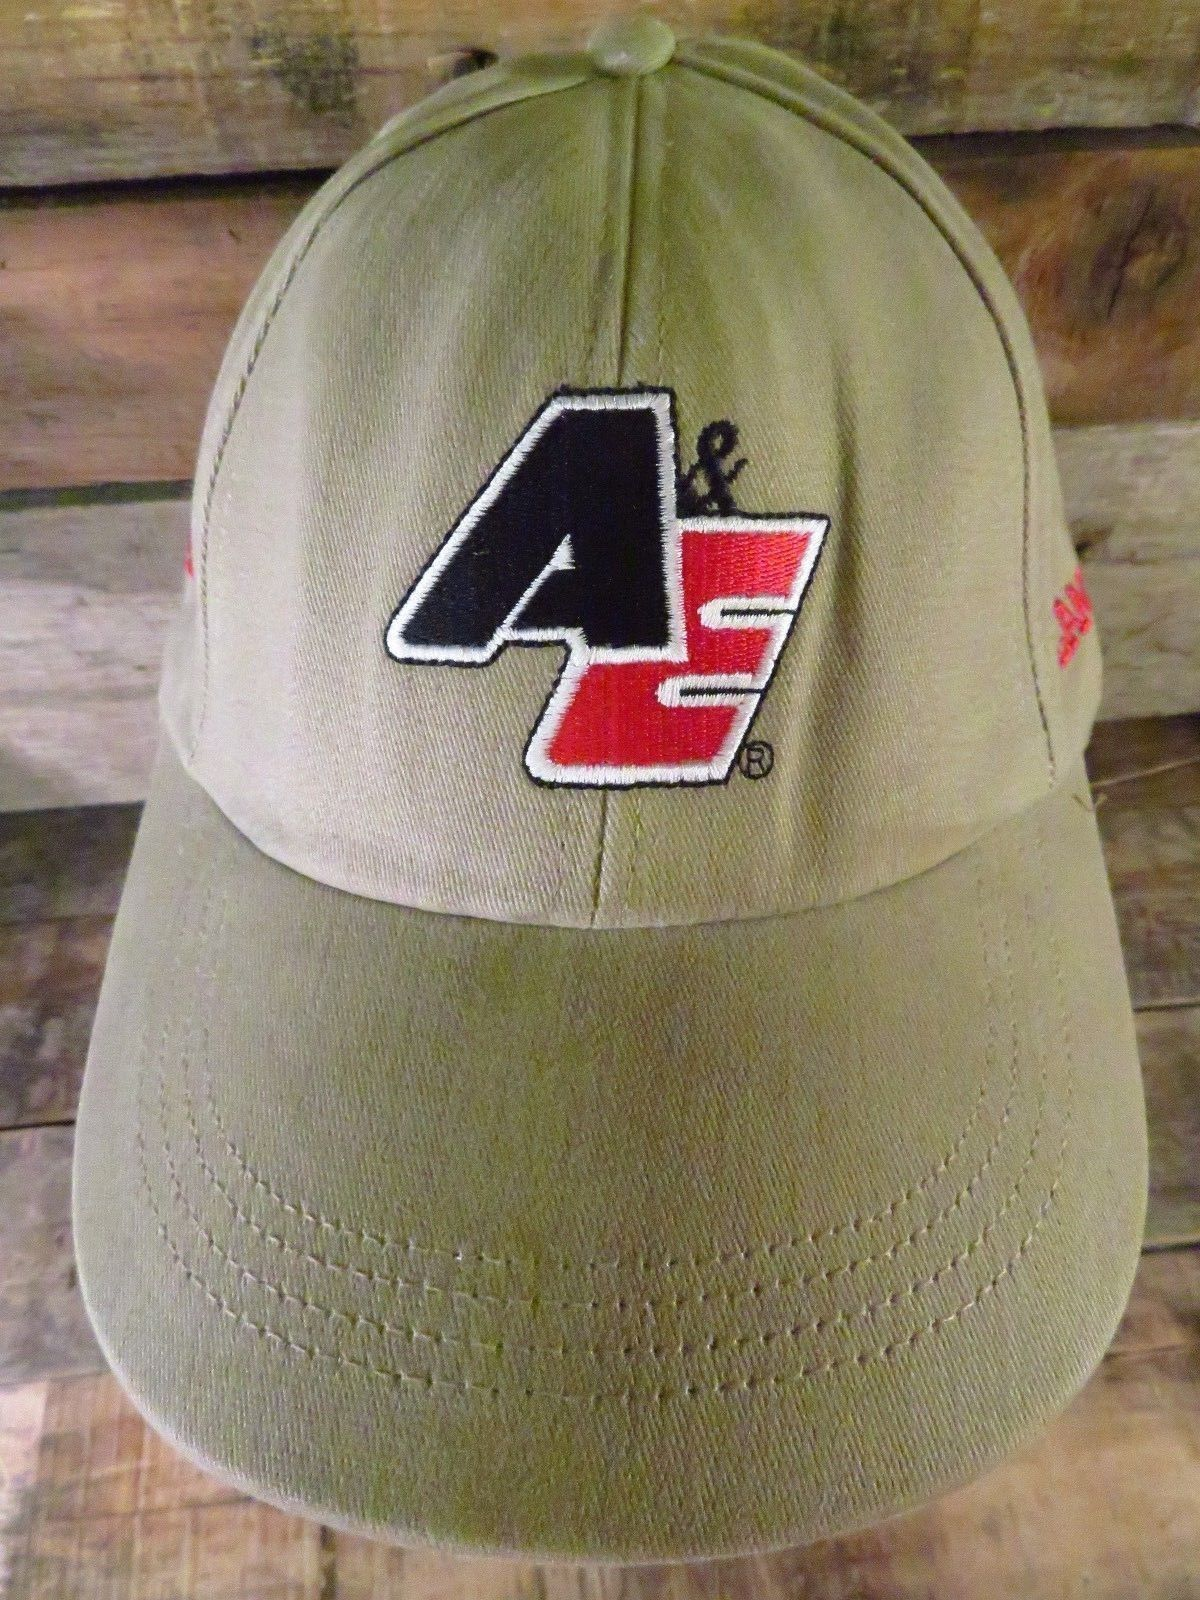 A&E Flame Out There Is A Difference American & Efird Adjustable Adult Hat Cap  - $5.93